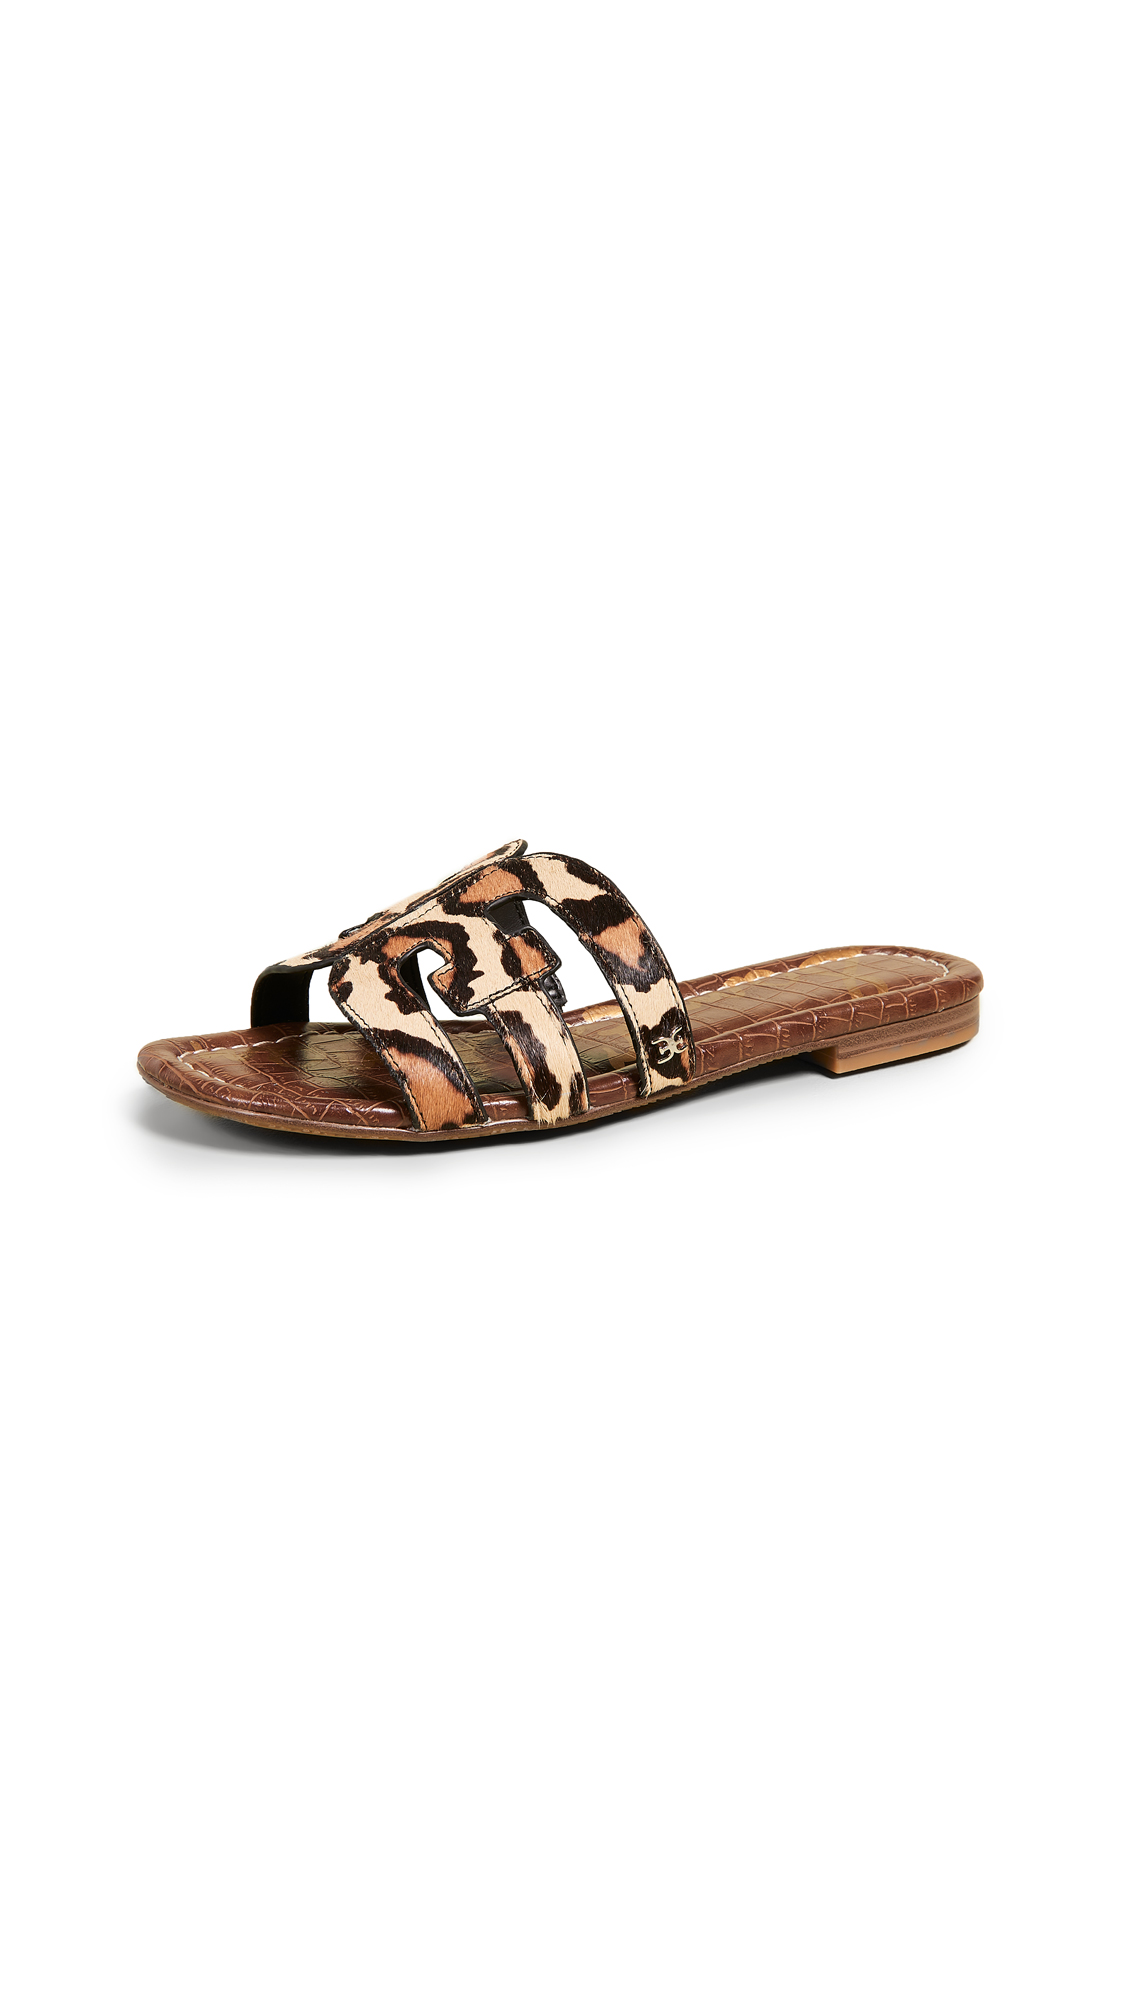 Sam Edelman Bay Slides - New Nude Leopard